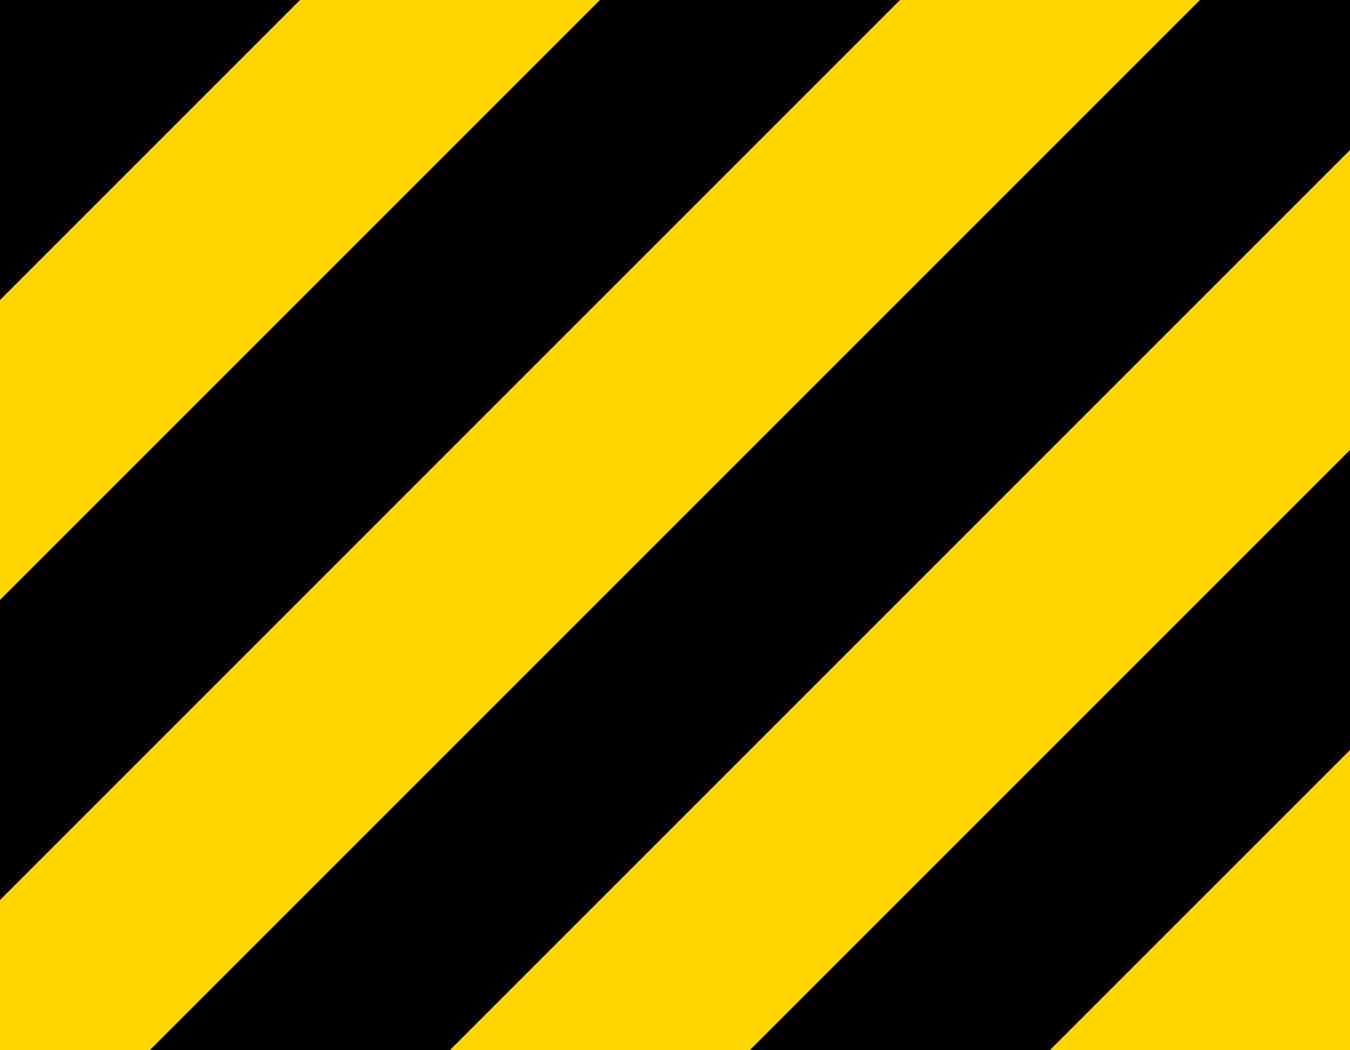 9in X 7in Yellow And Black Warning Vinyl Sticker Sheet